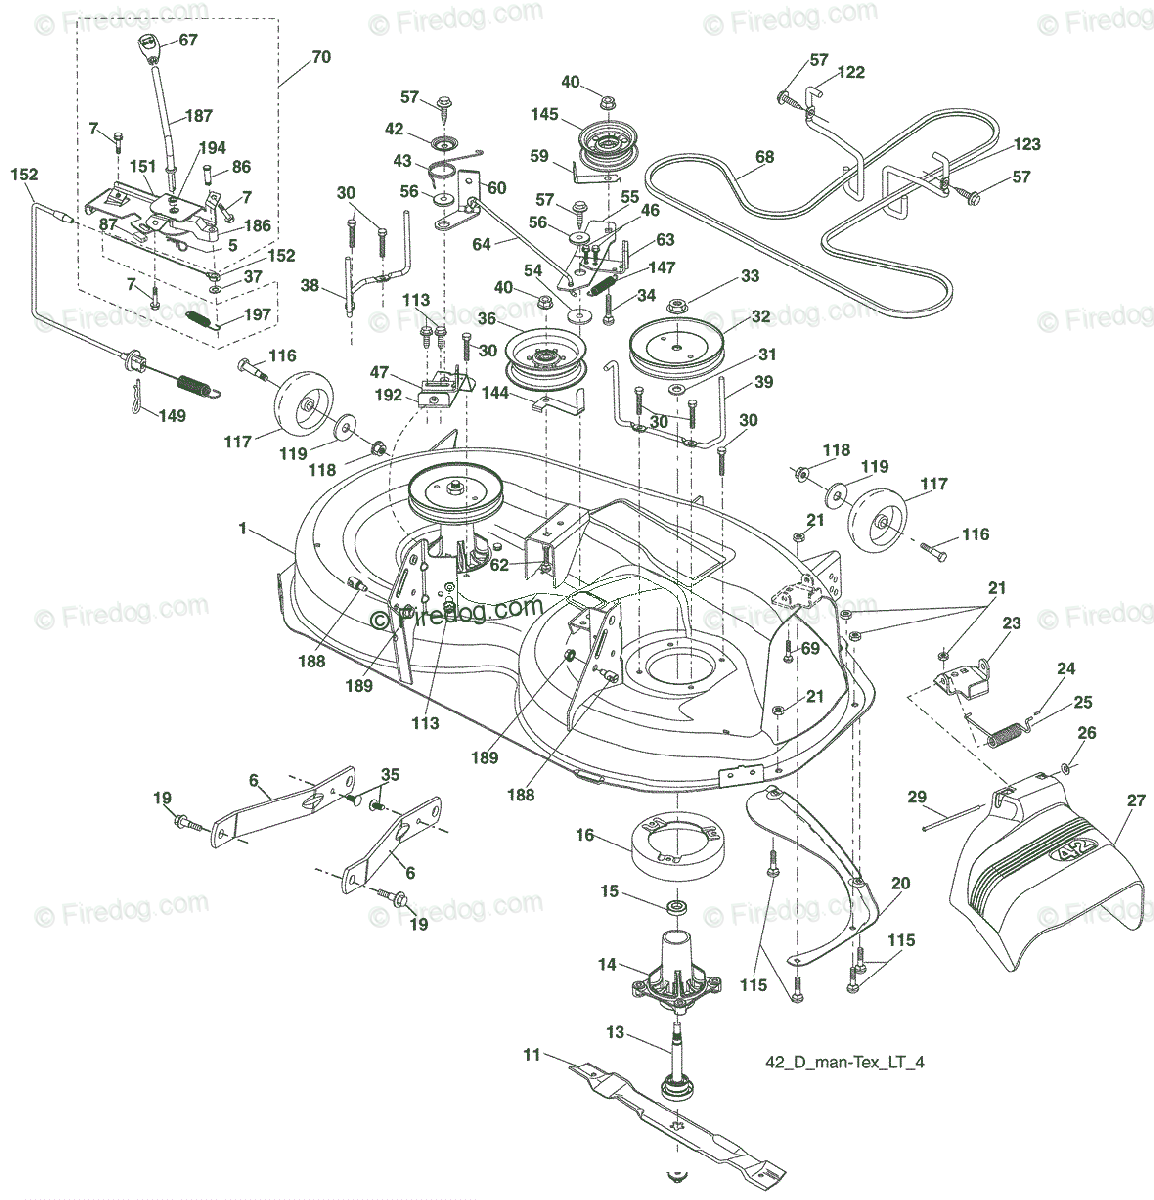 hight resolution of husqvarna ride mower yt 1942 t 96043000300 2006 05 oem parts diagram for mower deck firedog com